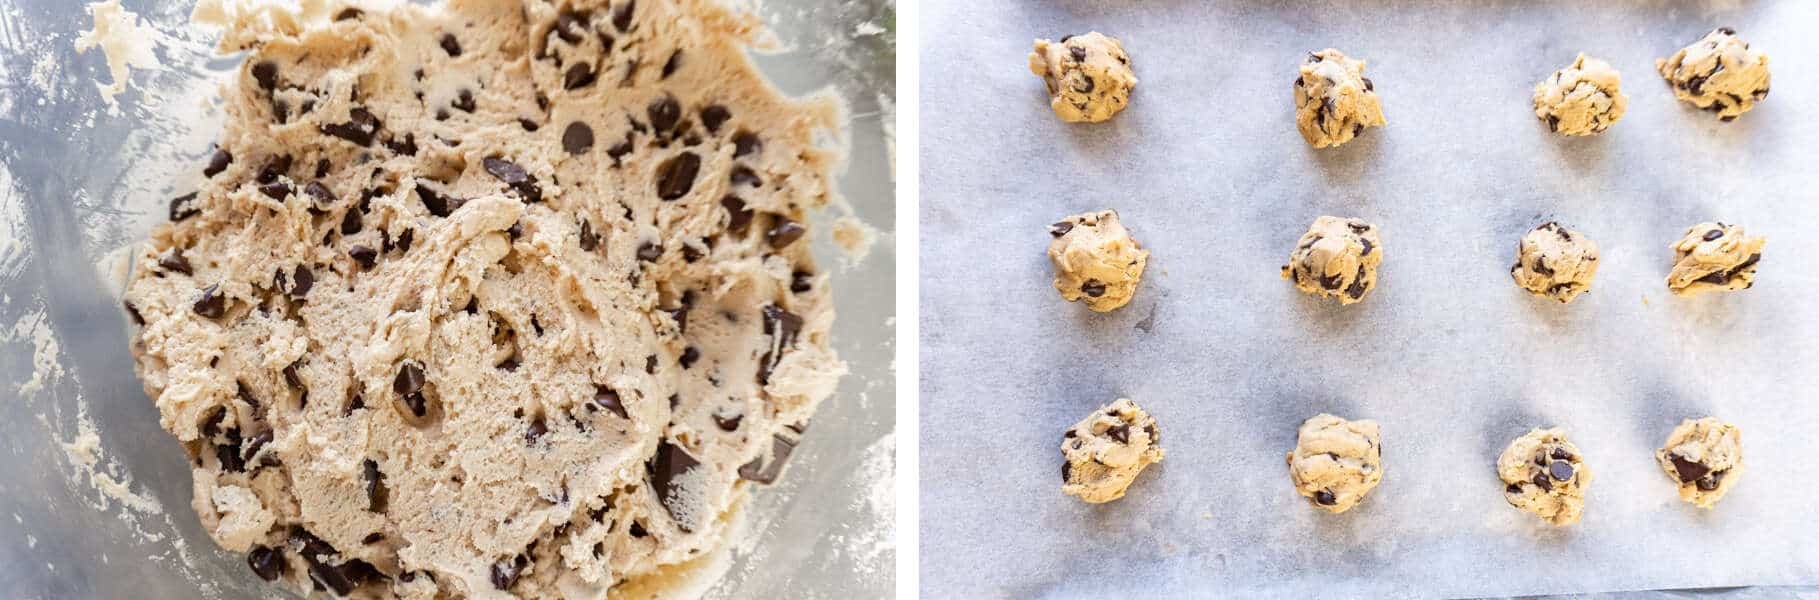 Chewy Chocolate Chip Cookie Dough